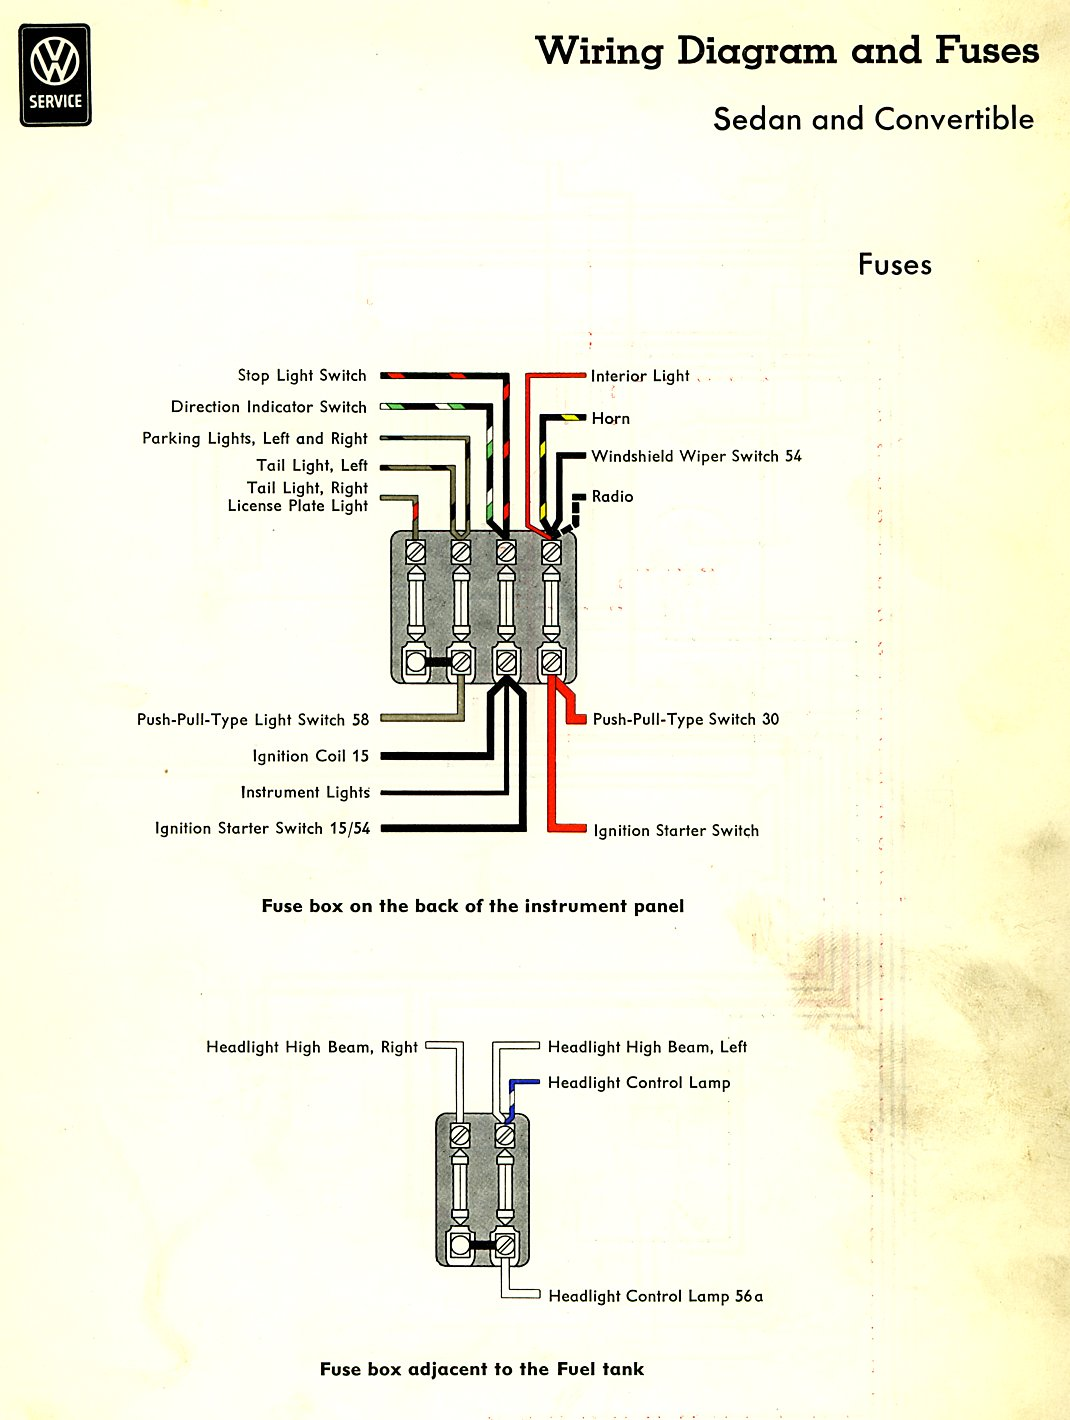 Bug Fuses on 1974 Vw Beetle Wiring Diagram